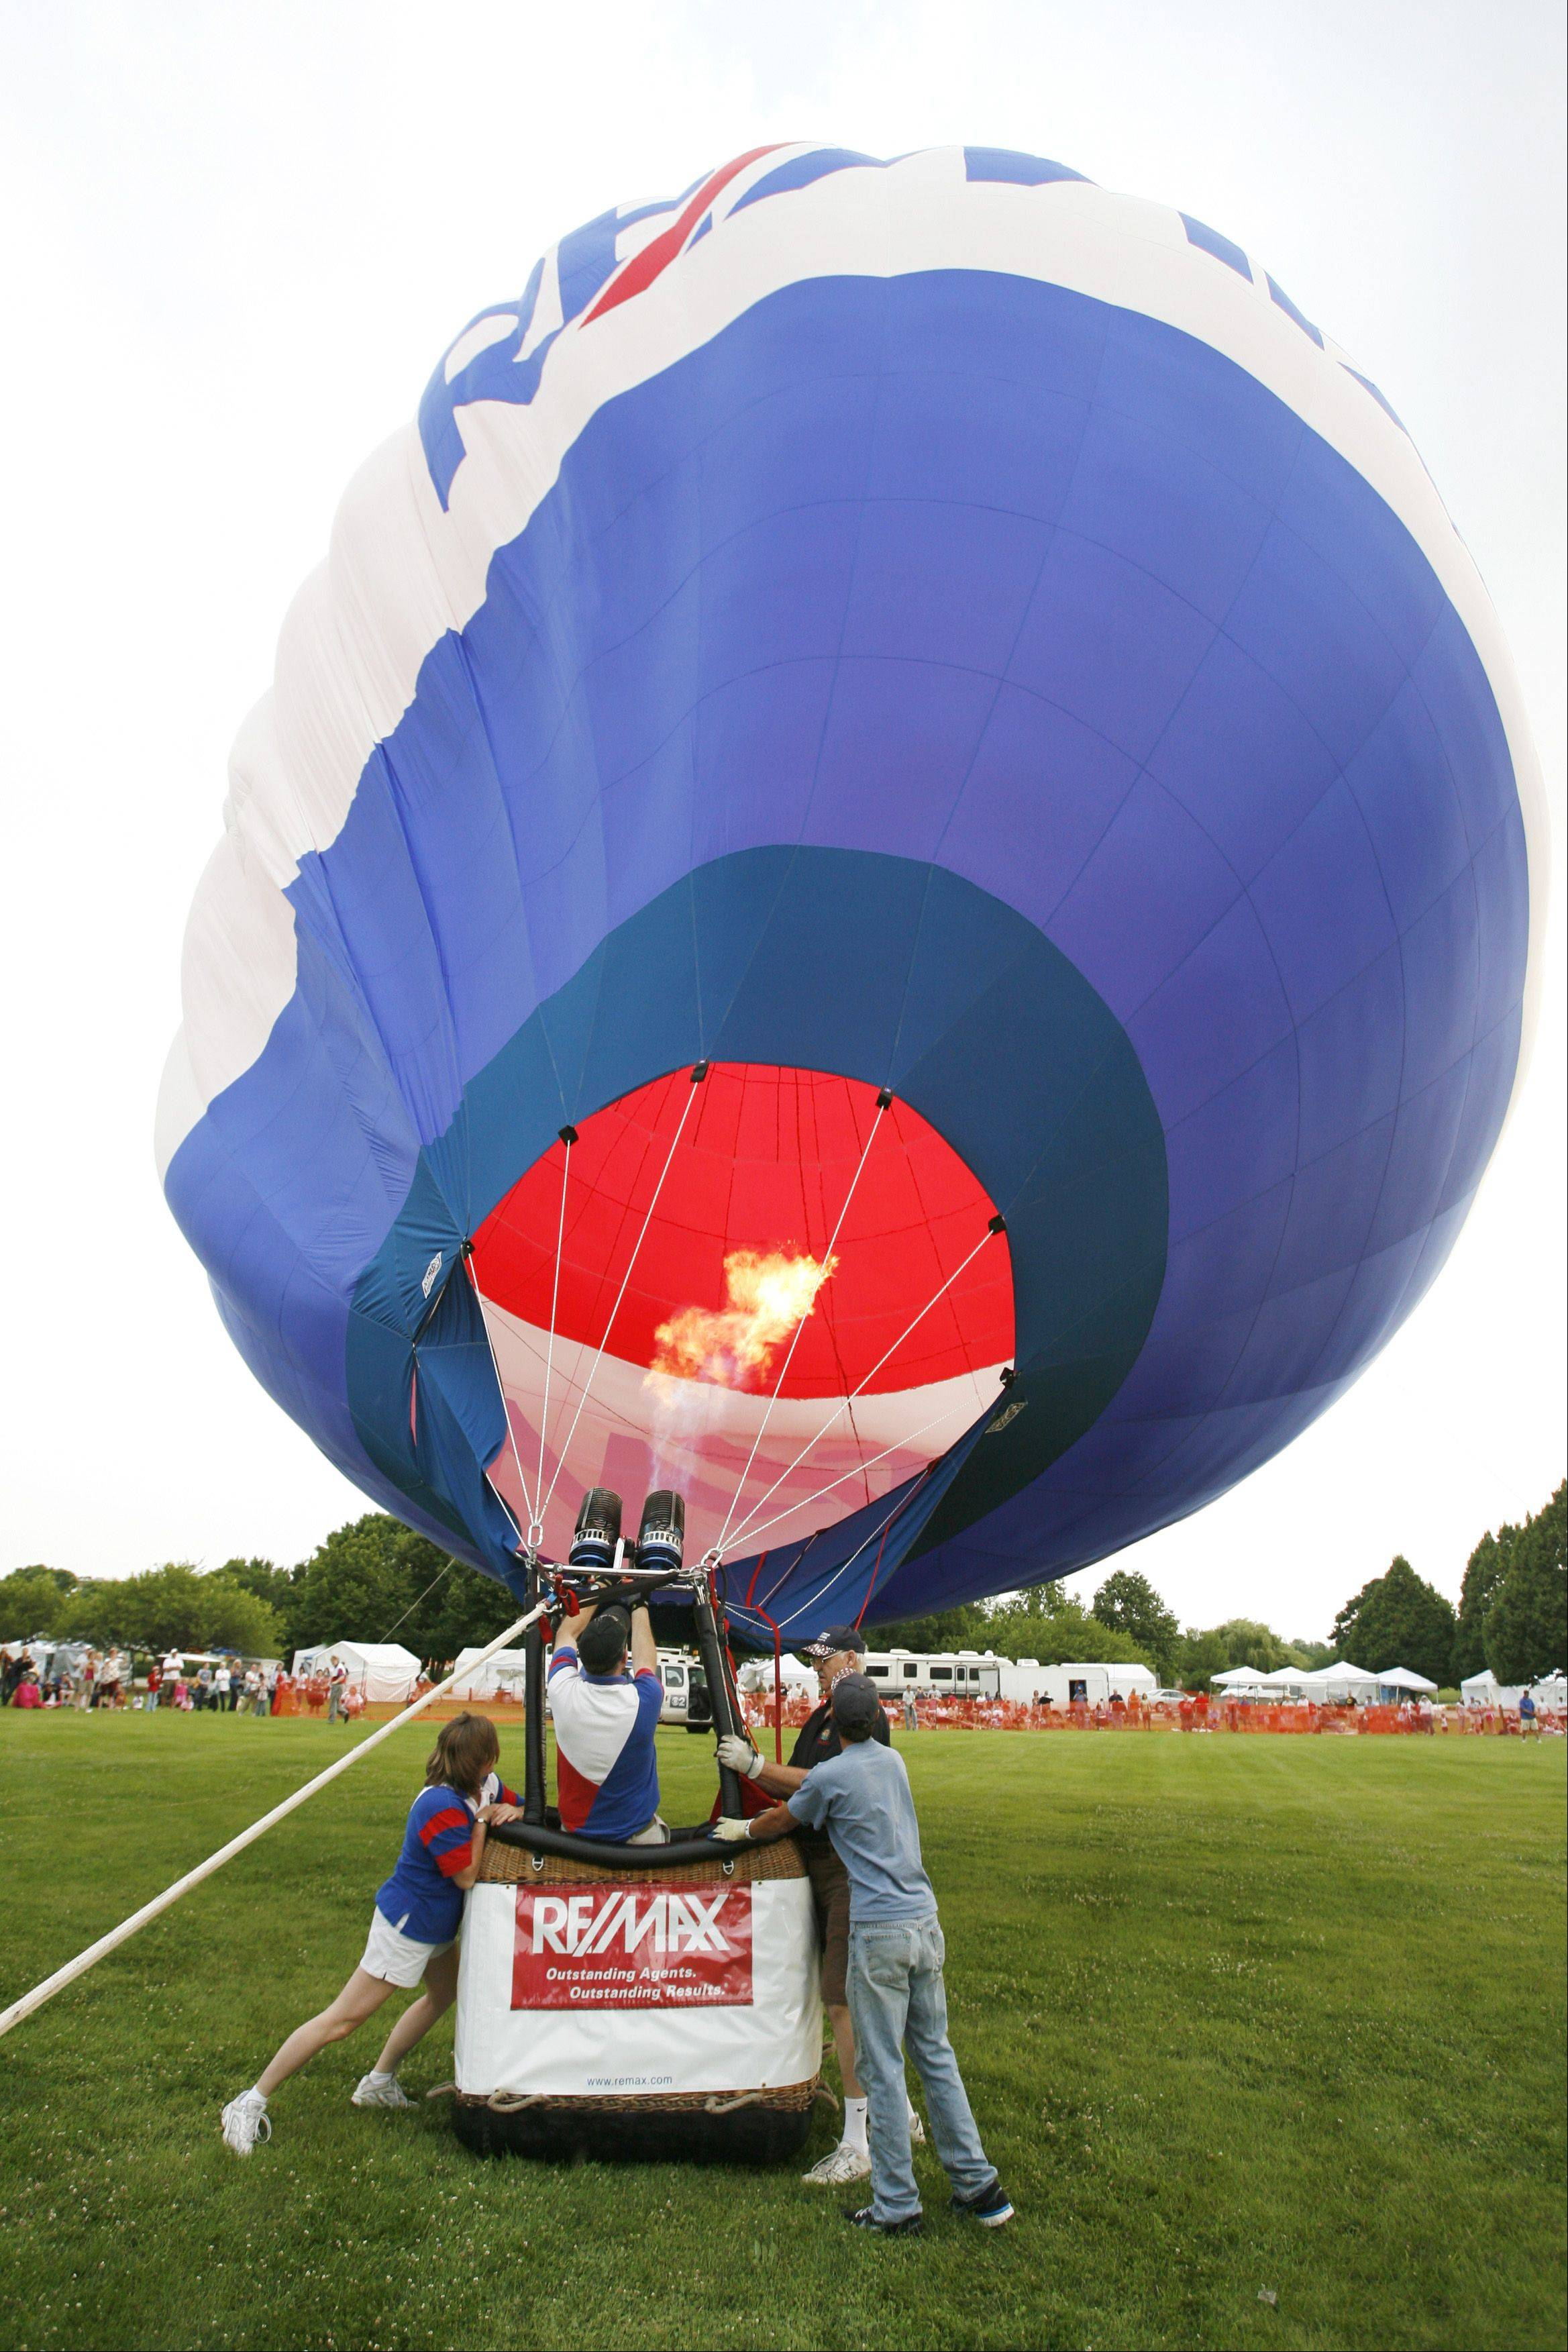 A one-day hot-air balloon festival is planned in Grayslake on Saturday, Aug. 24. The granddaddy of balloon events in the area is Lisle's Eyes to the Skies festival. This tethered balloon was at Eyes in the Skies in 2011.